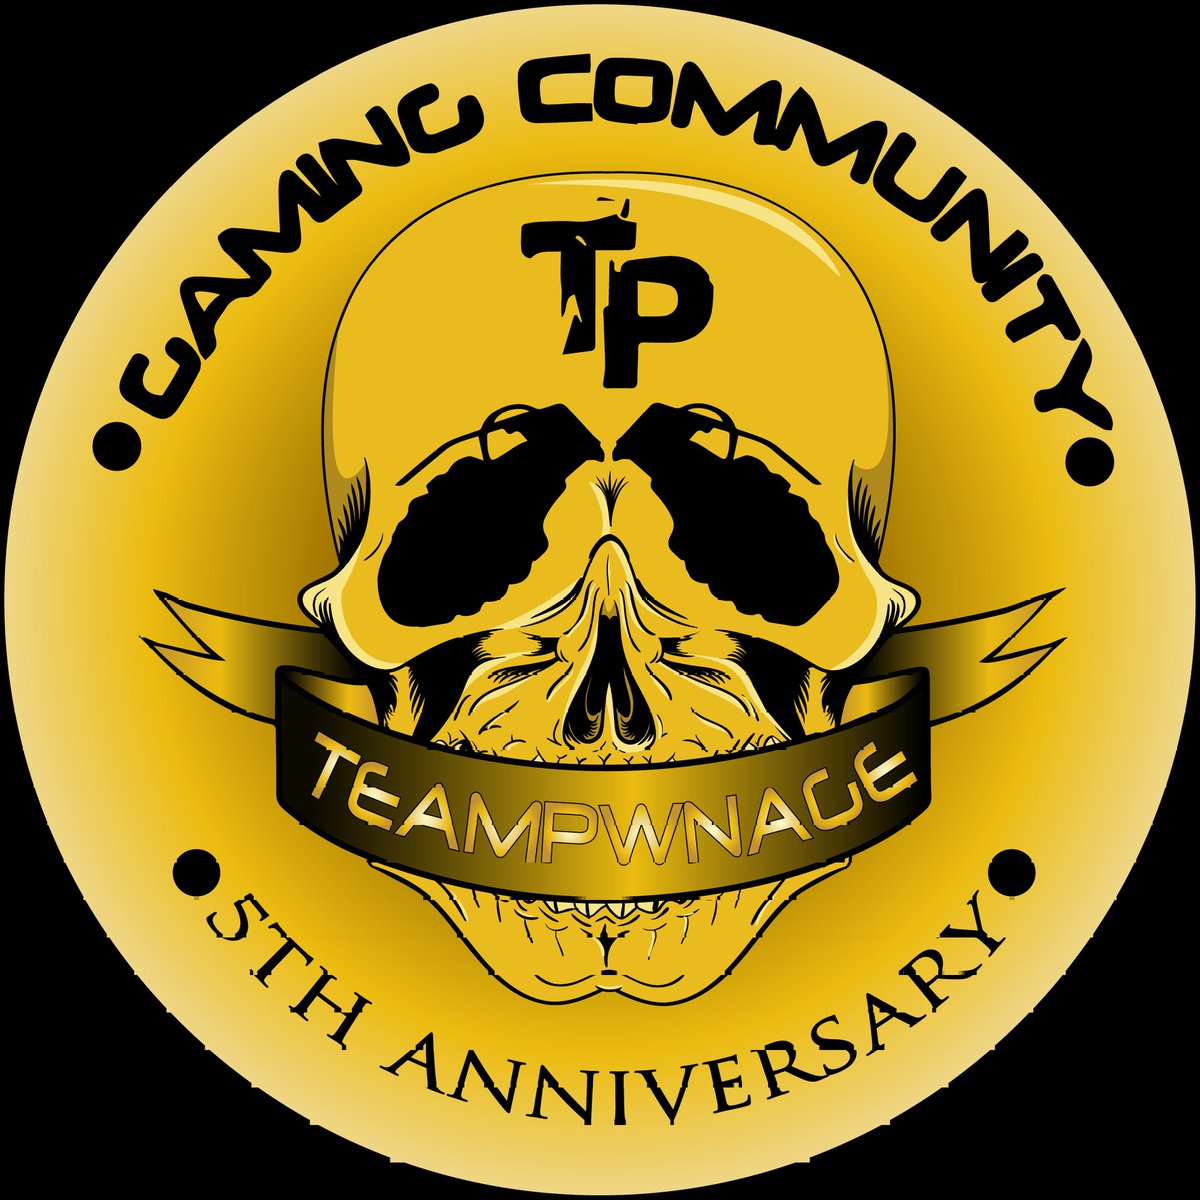 The Month of June marks our 5th anniversary. We thank some our original members and leaders marked in this post! https://t.co/D32qoU4Vw2